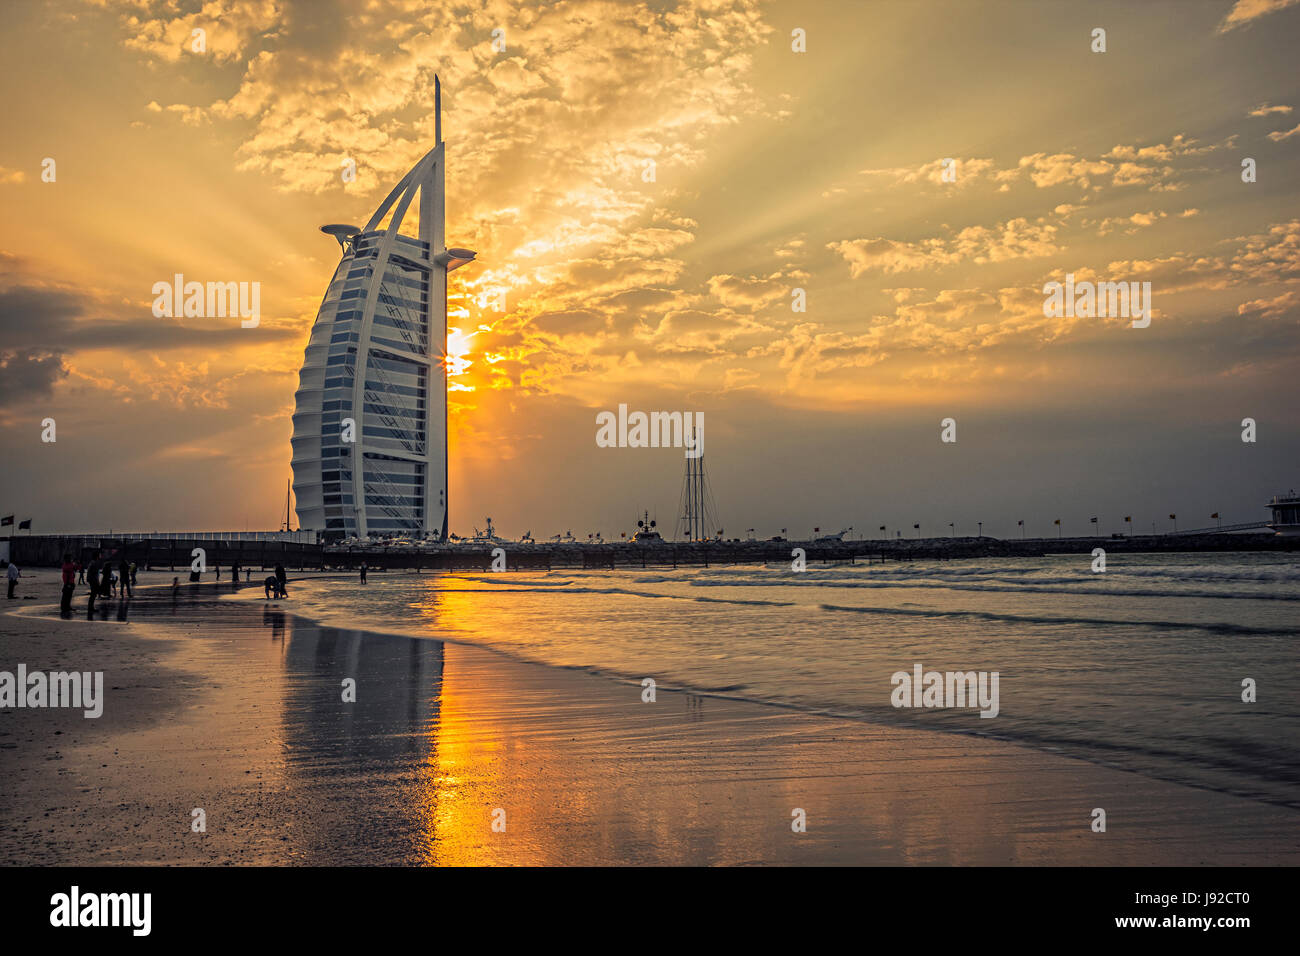 BUrj al Arab at sunset - Stock Image